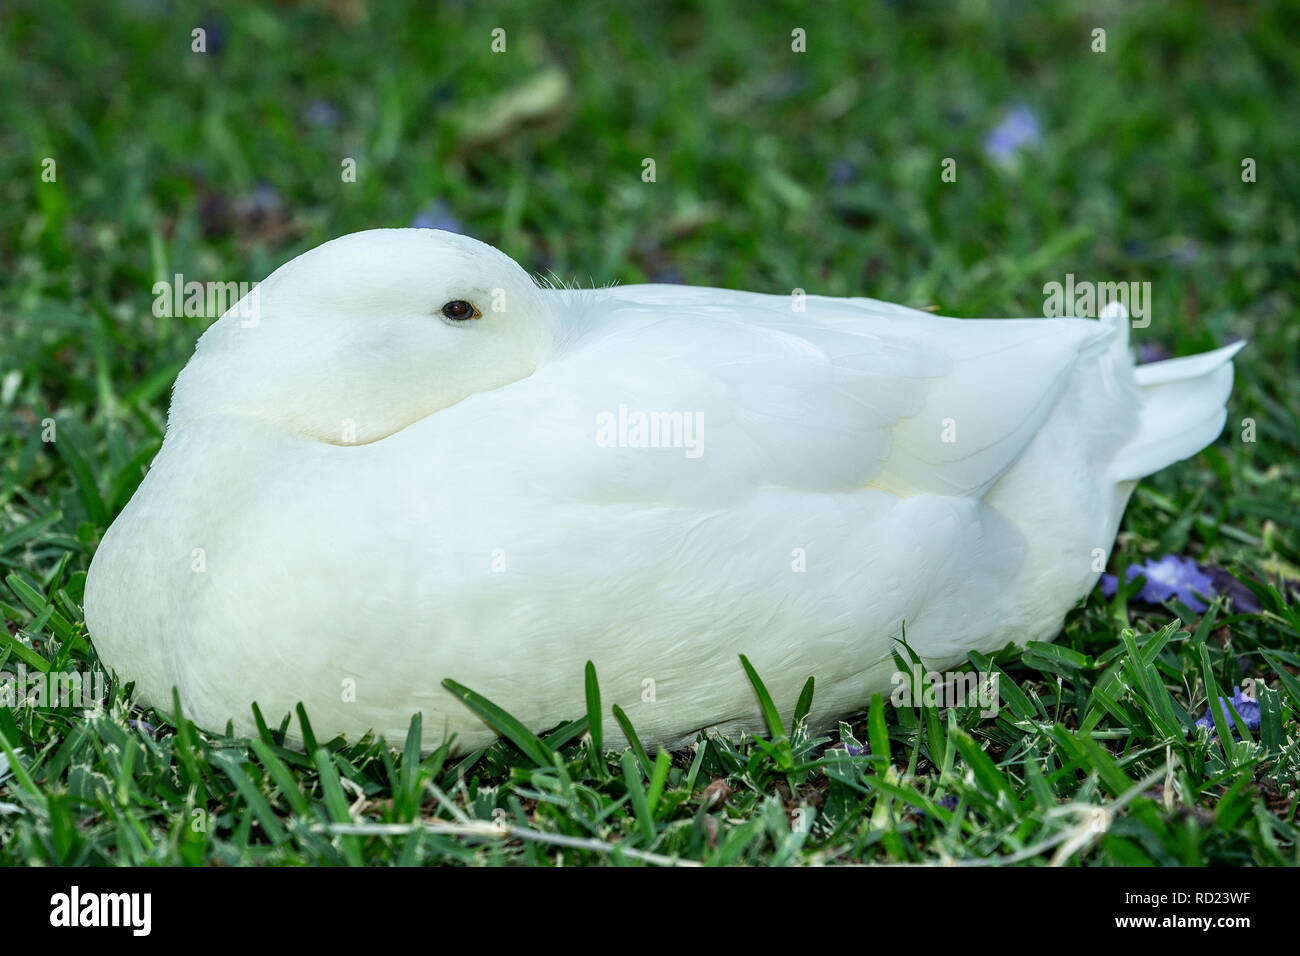 A domestic White Pekin, Pekin or Long Island Duck (Anas platyrhynchos domesticus) sitting on grass with head turned into feathers. - Stock Image